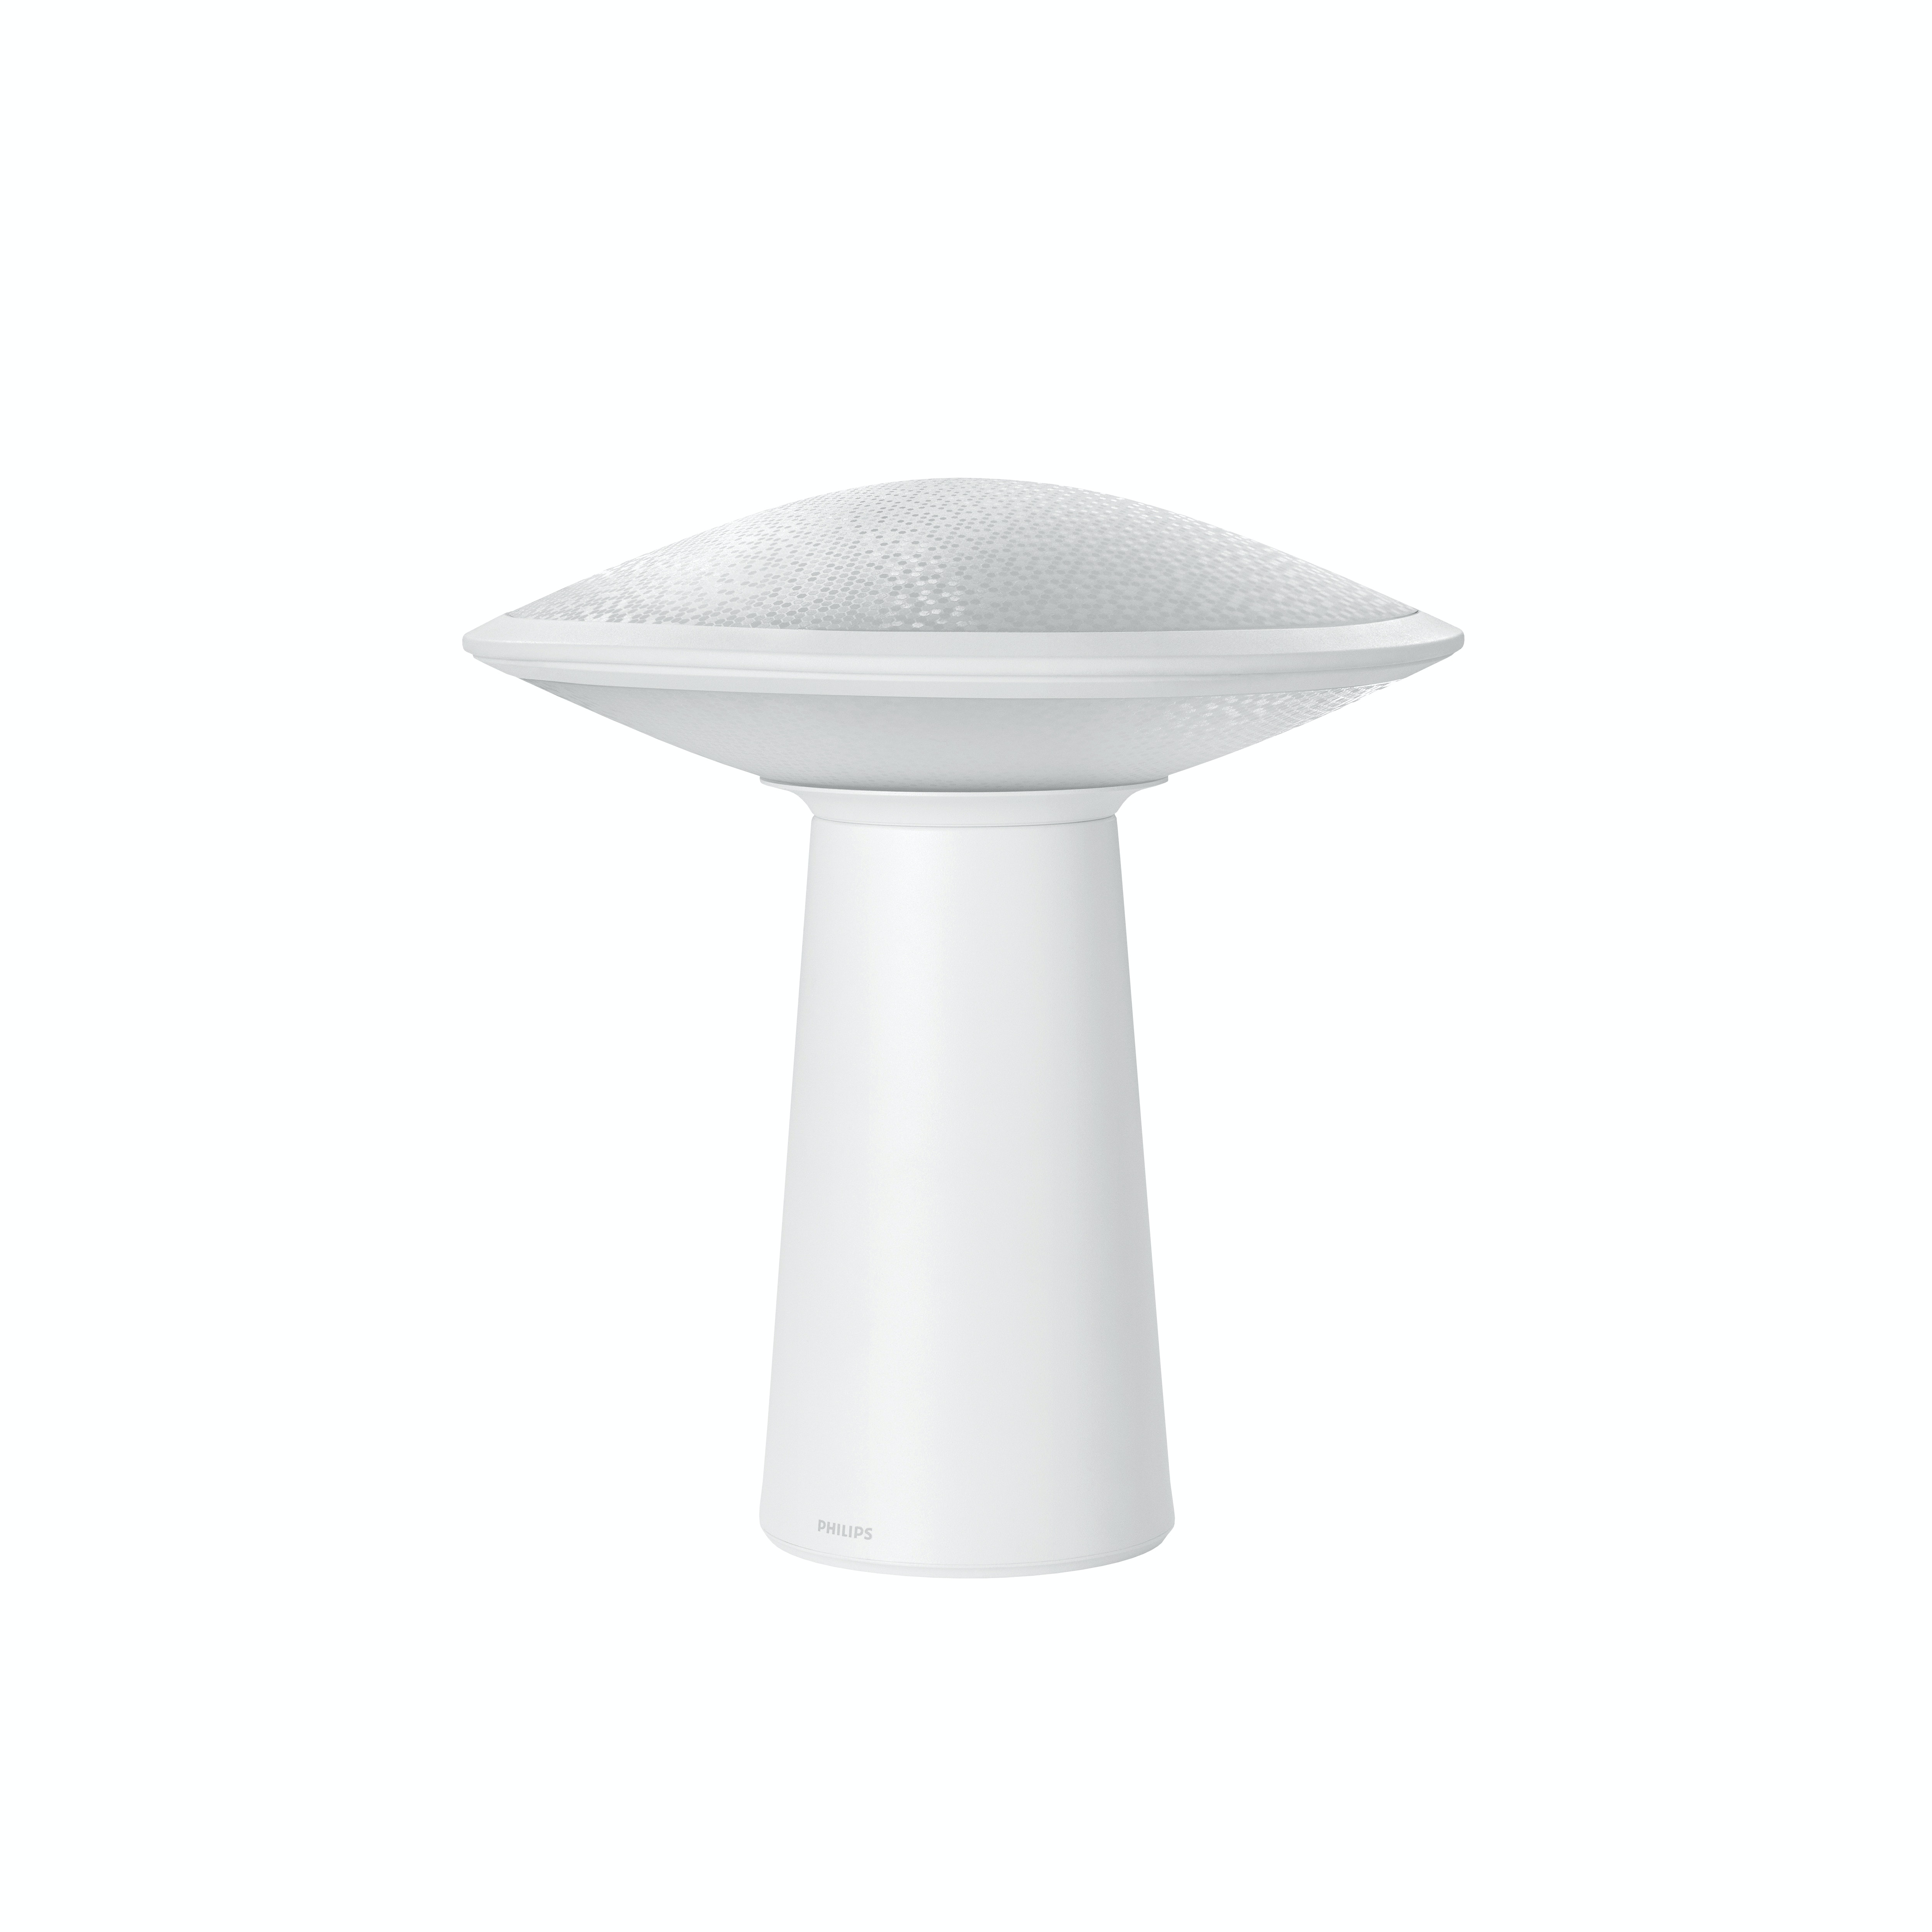 Bordslampa Philips Hue Phoenix 3115431PH